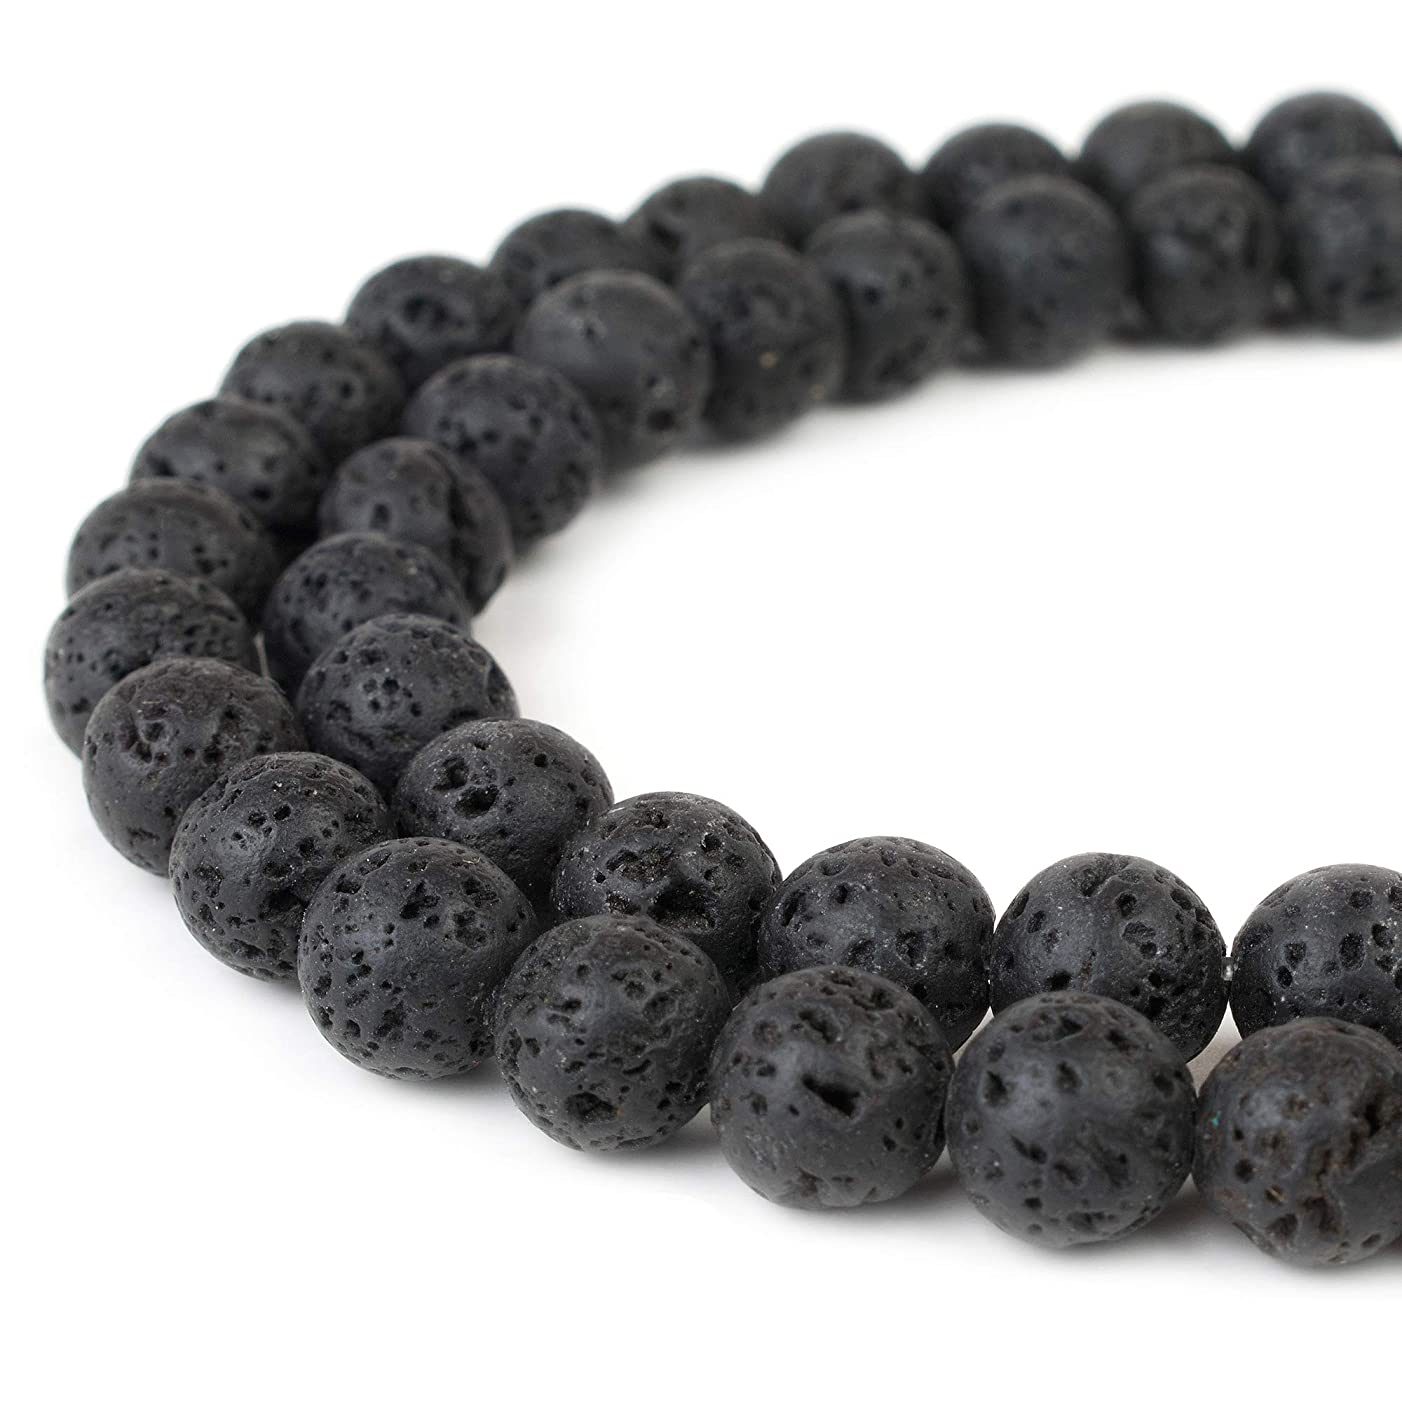 RVG 12mm Natural Black Lava Rock Beads Round Gemstone Volcanic Rock Gemstone Loose Stone Mala 15.5 in Strand For Jewelry Making (Approx 30-32 pcs)